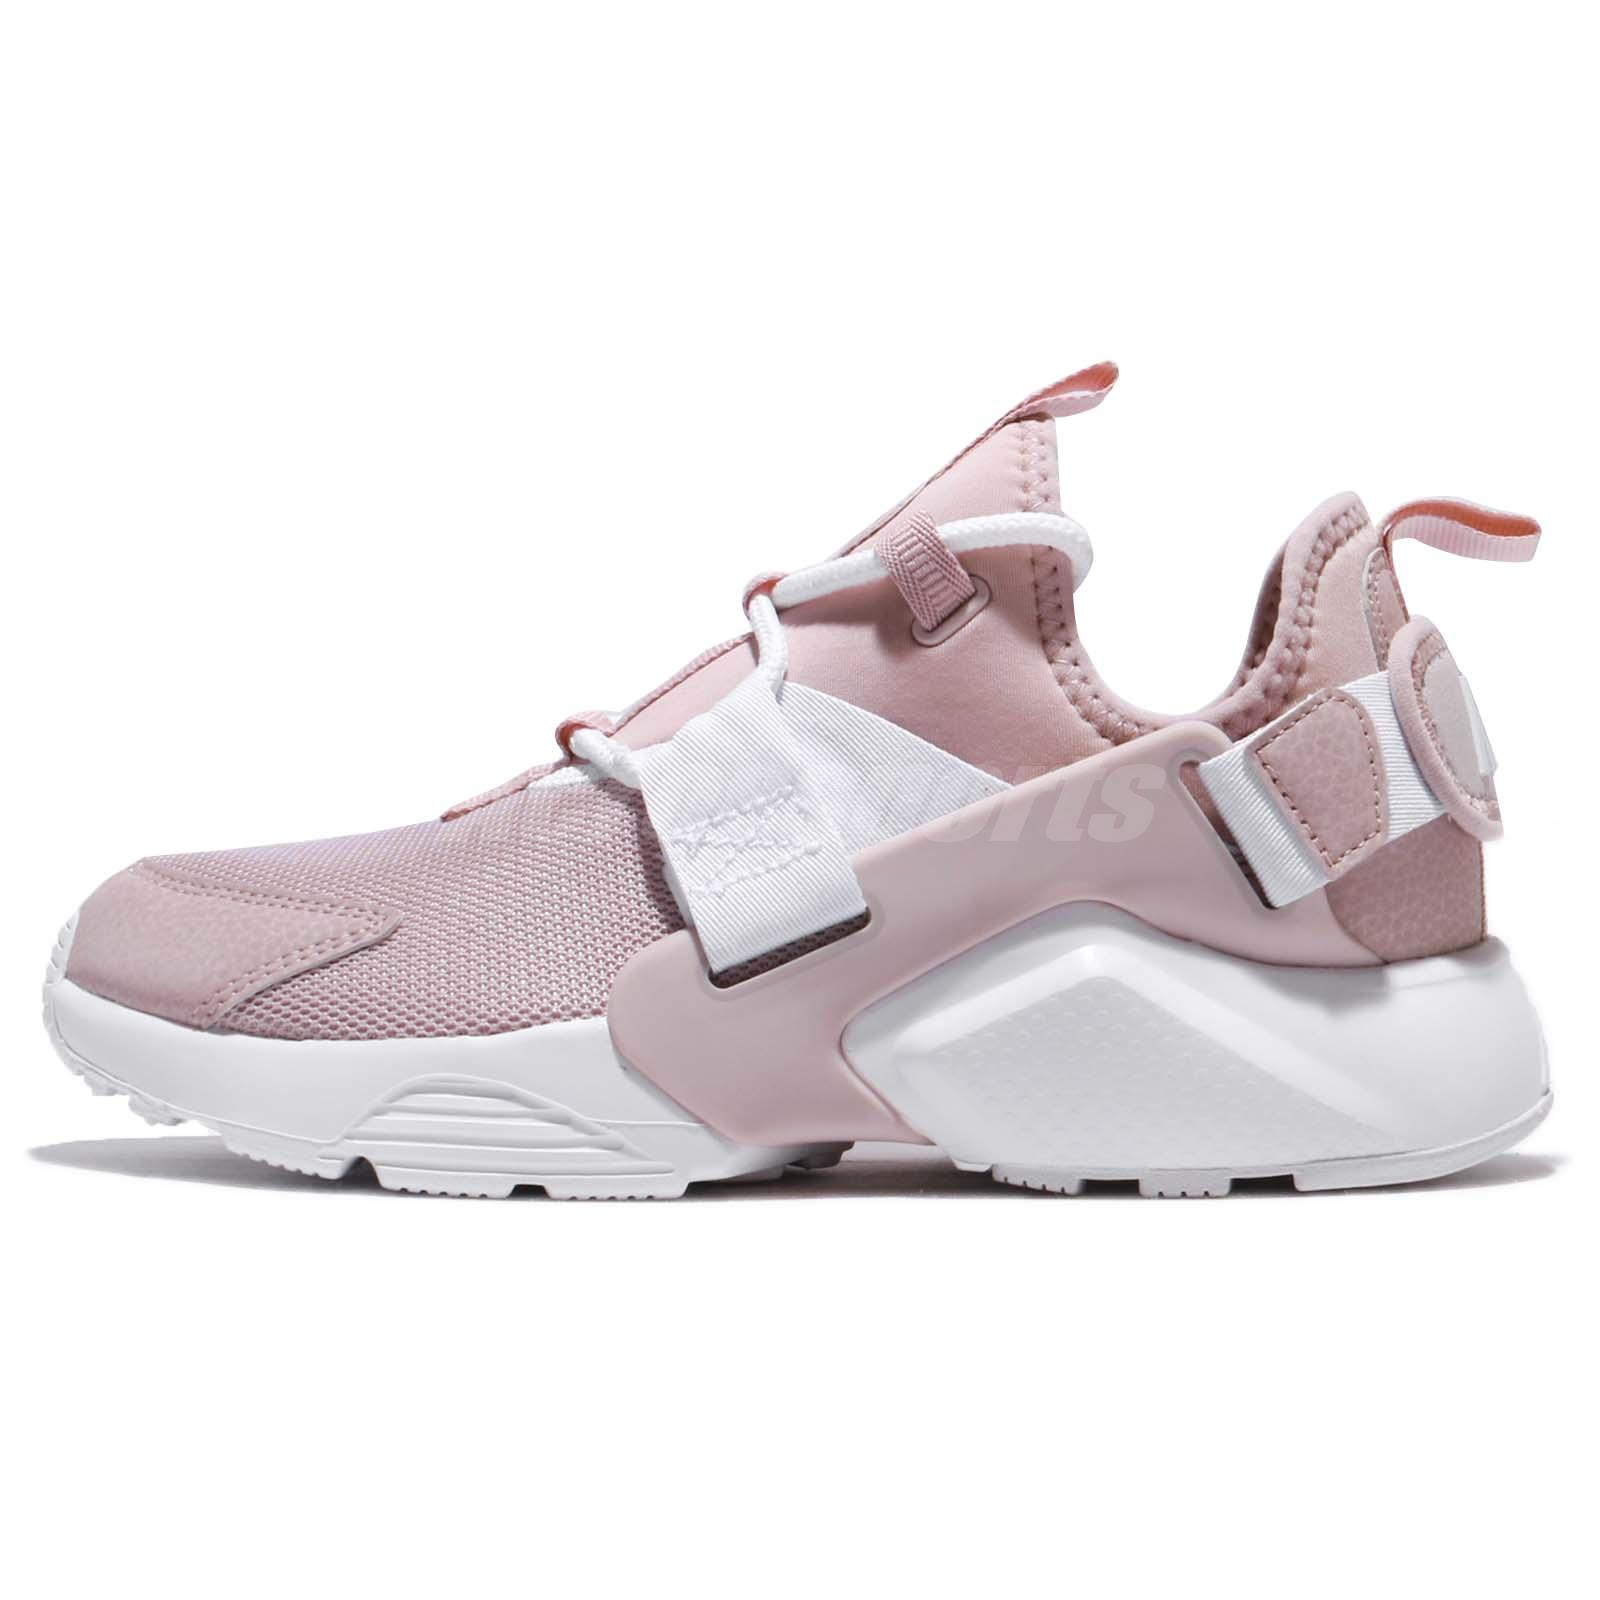 newest 700f7 cbbc7 Wmns Nike Air Huarache City Low Particle Rose Pink Women Running Shoe AH6804,600  ...